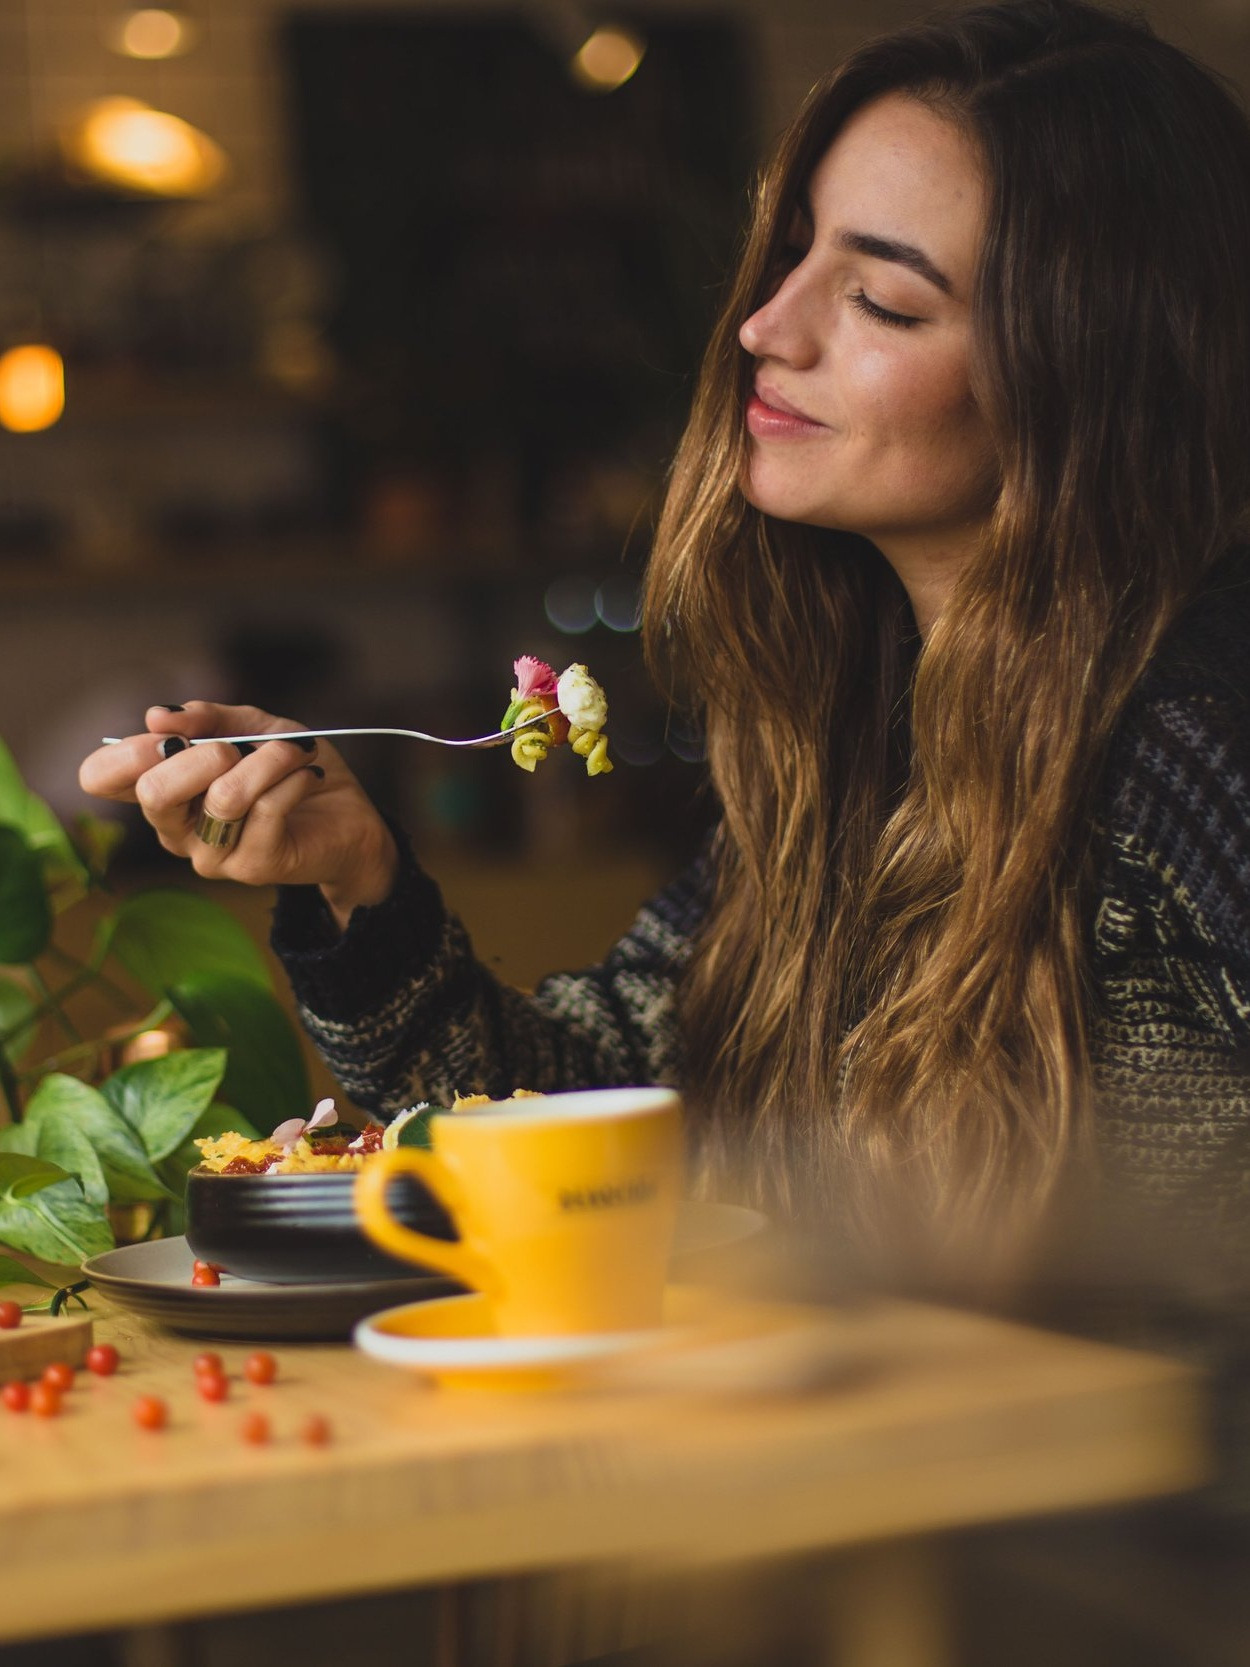 Why does eating smRt products make you feel good? - - They taste great and are the healthy option to what you already eat- They contain the health benefits of iodine and other essential minerals- They're a valuable source of protein, are high in fibre, gluten free and dairy free- They make it easy for you improve your nutrition